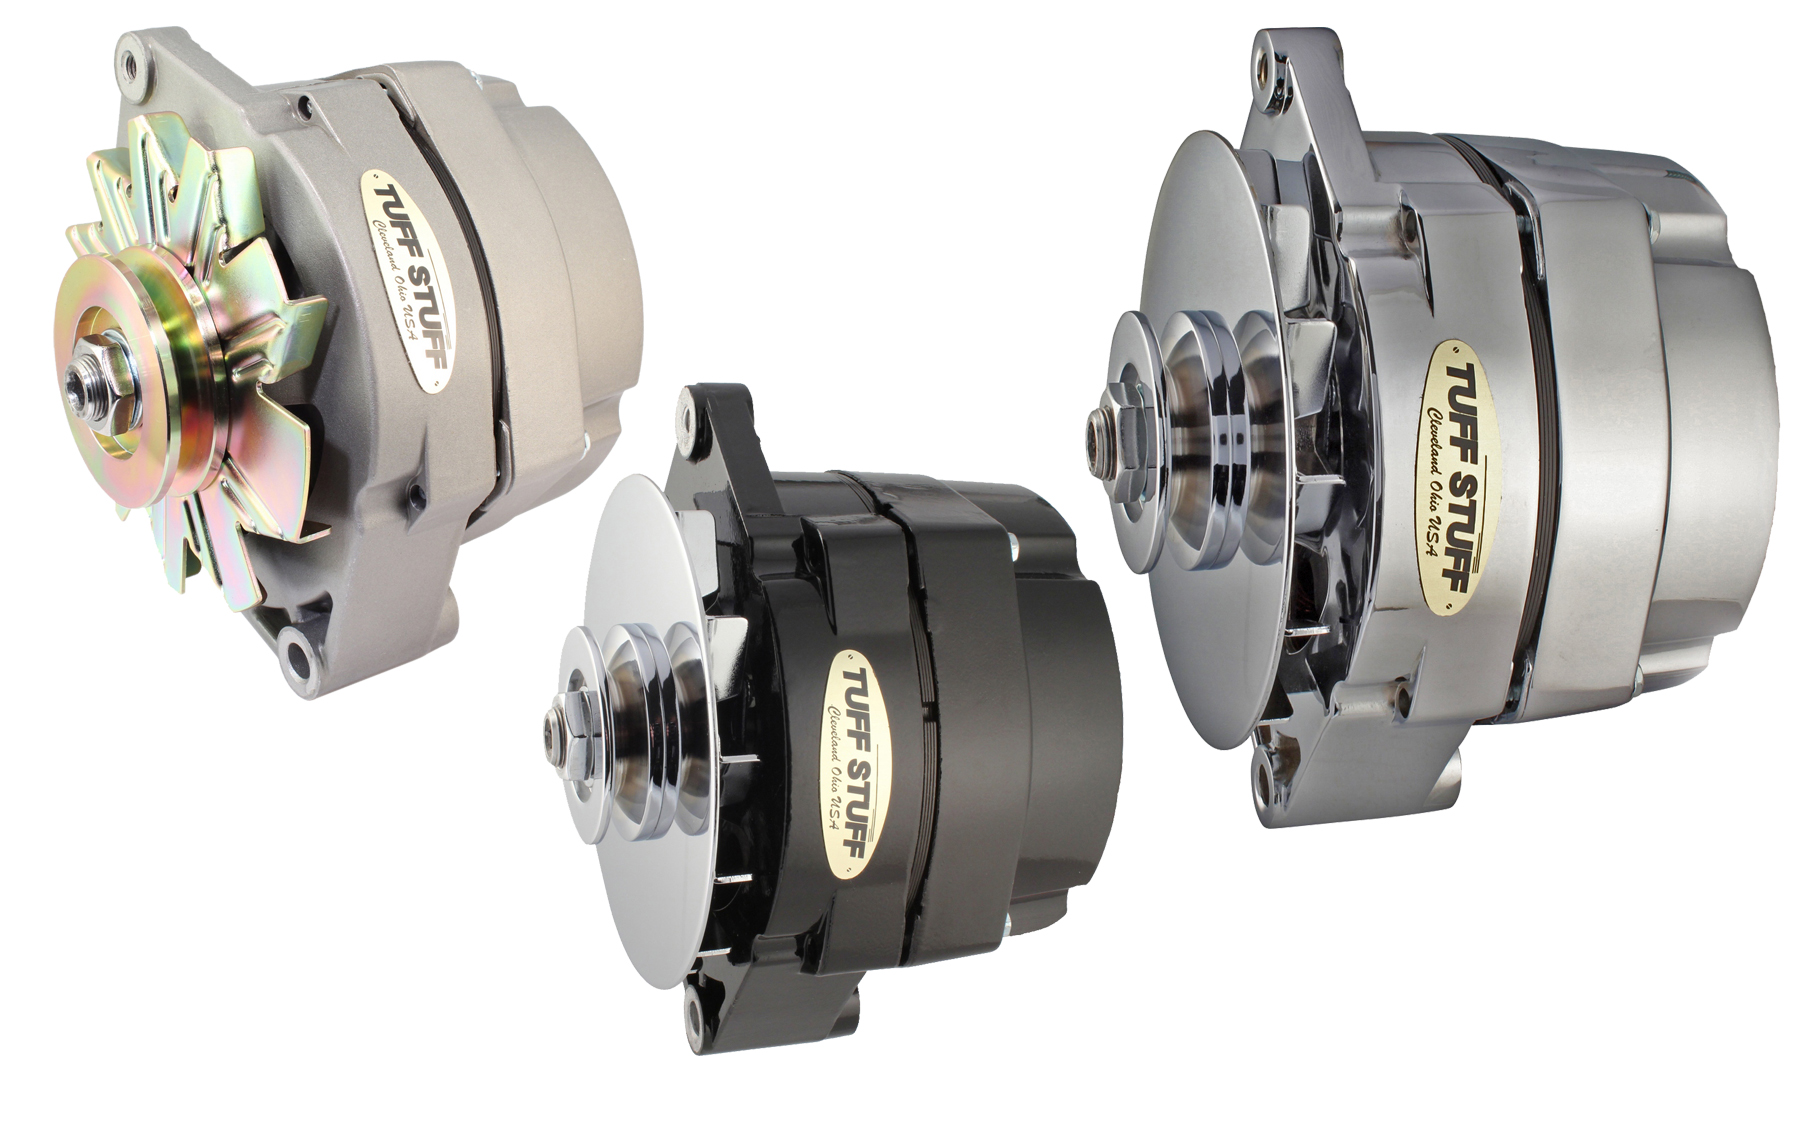 hight resolution of one wire or three wire alternator there s no wrong choice